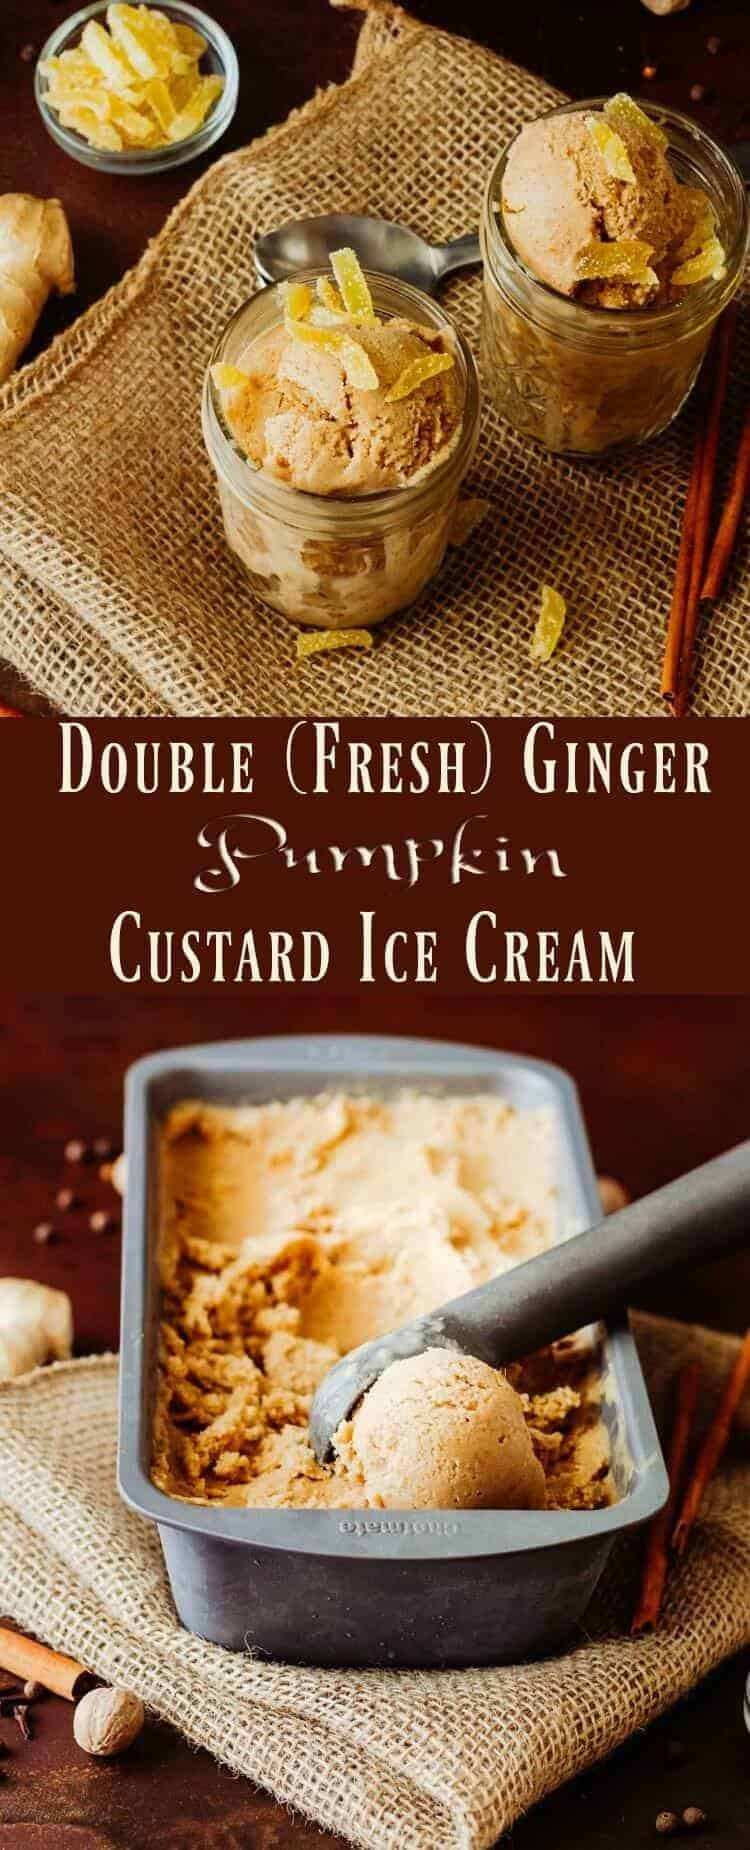 Double (Fresh) Ginger Pumpkin Custard Ice Cream Pin - The best of pumpkin pie in a frozen custard, Double (Fresh) Ginger Pumpkin Custard Ice Cream will remind you of the best pumpkin pie you ever had! A pumpkin custard base gets a flavor boost with fresh ginger paste, grated fresh nutmeg, cinnamon, allspice, and cloves. Garnished with candied ginger, this flavor bomb may become your favorite fall dessert! #falldesserts #frozencustard #pumpkinicecream #glutenfreedesserts